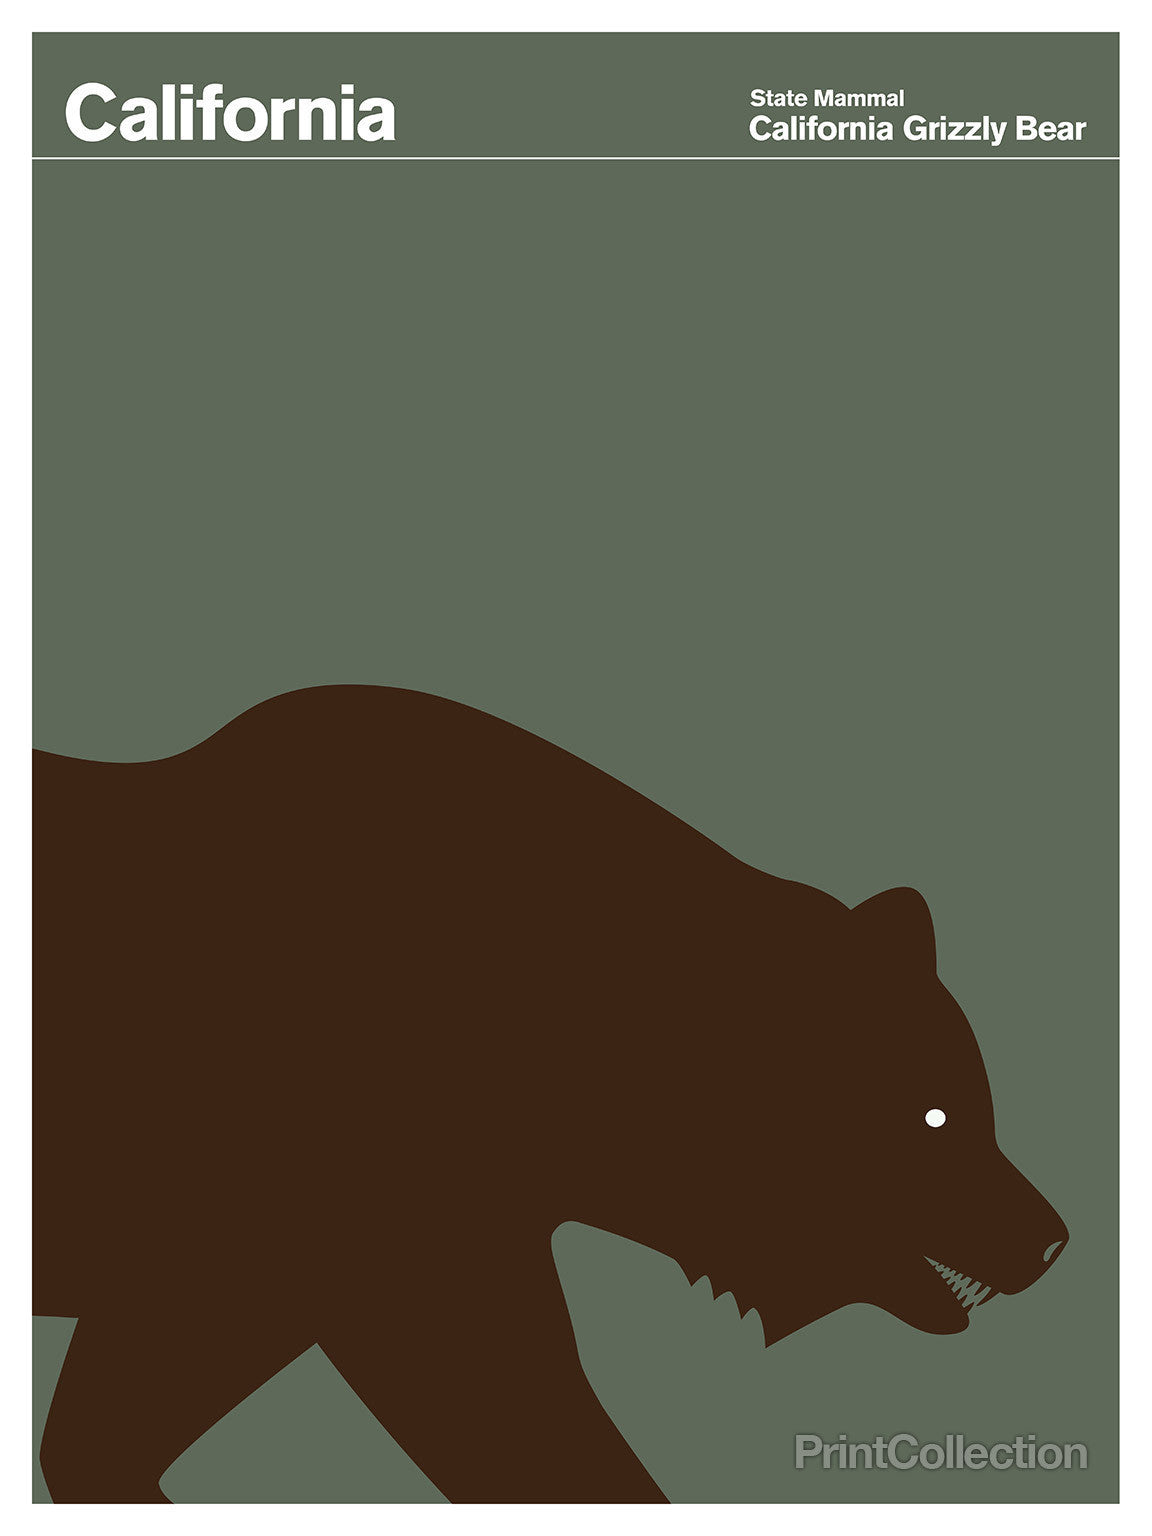 print collection california grizzly bear